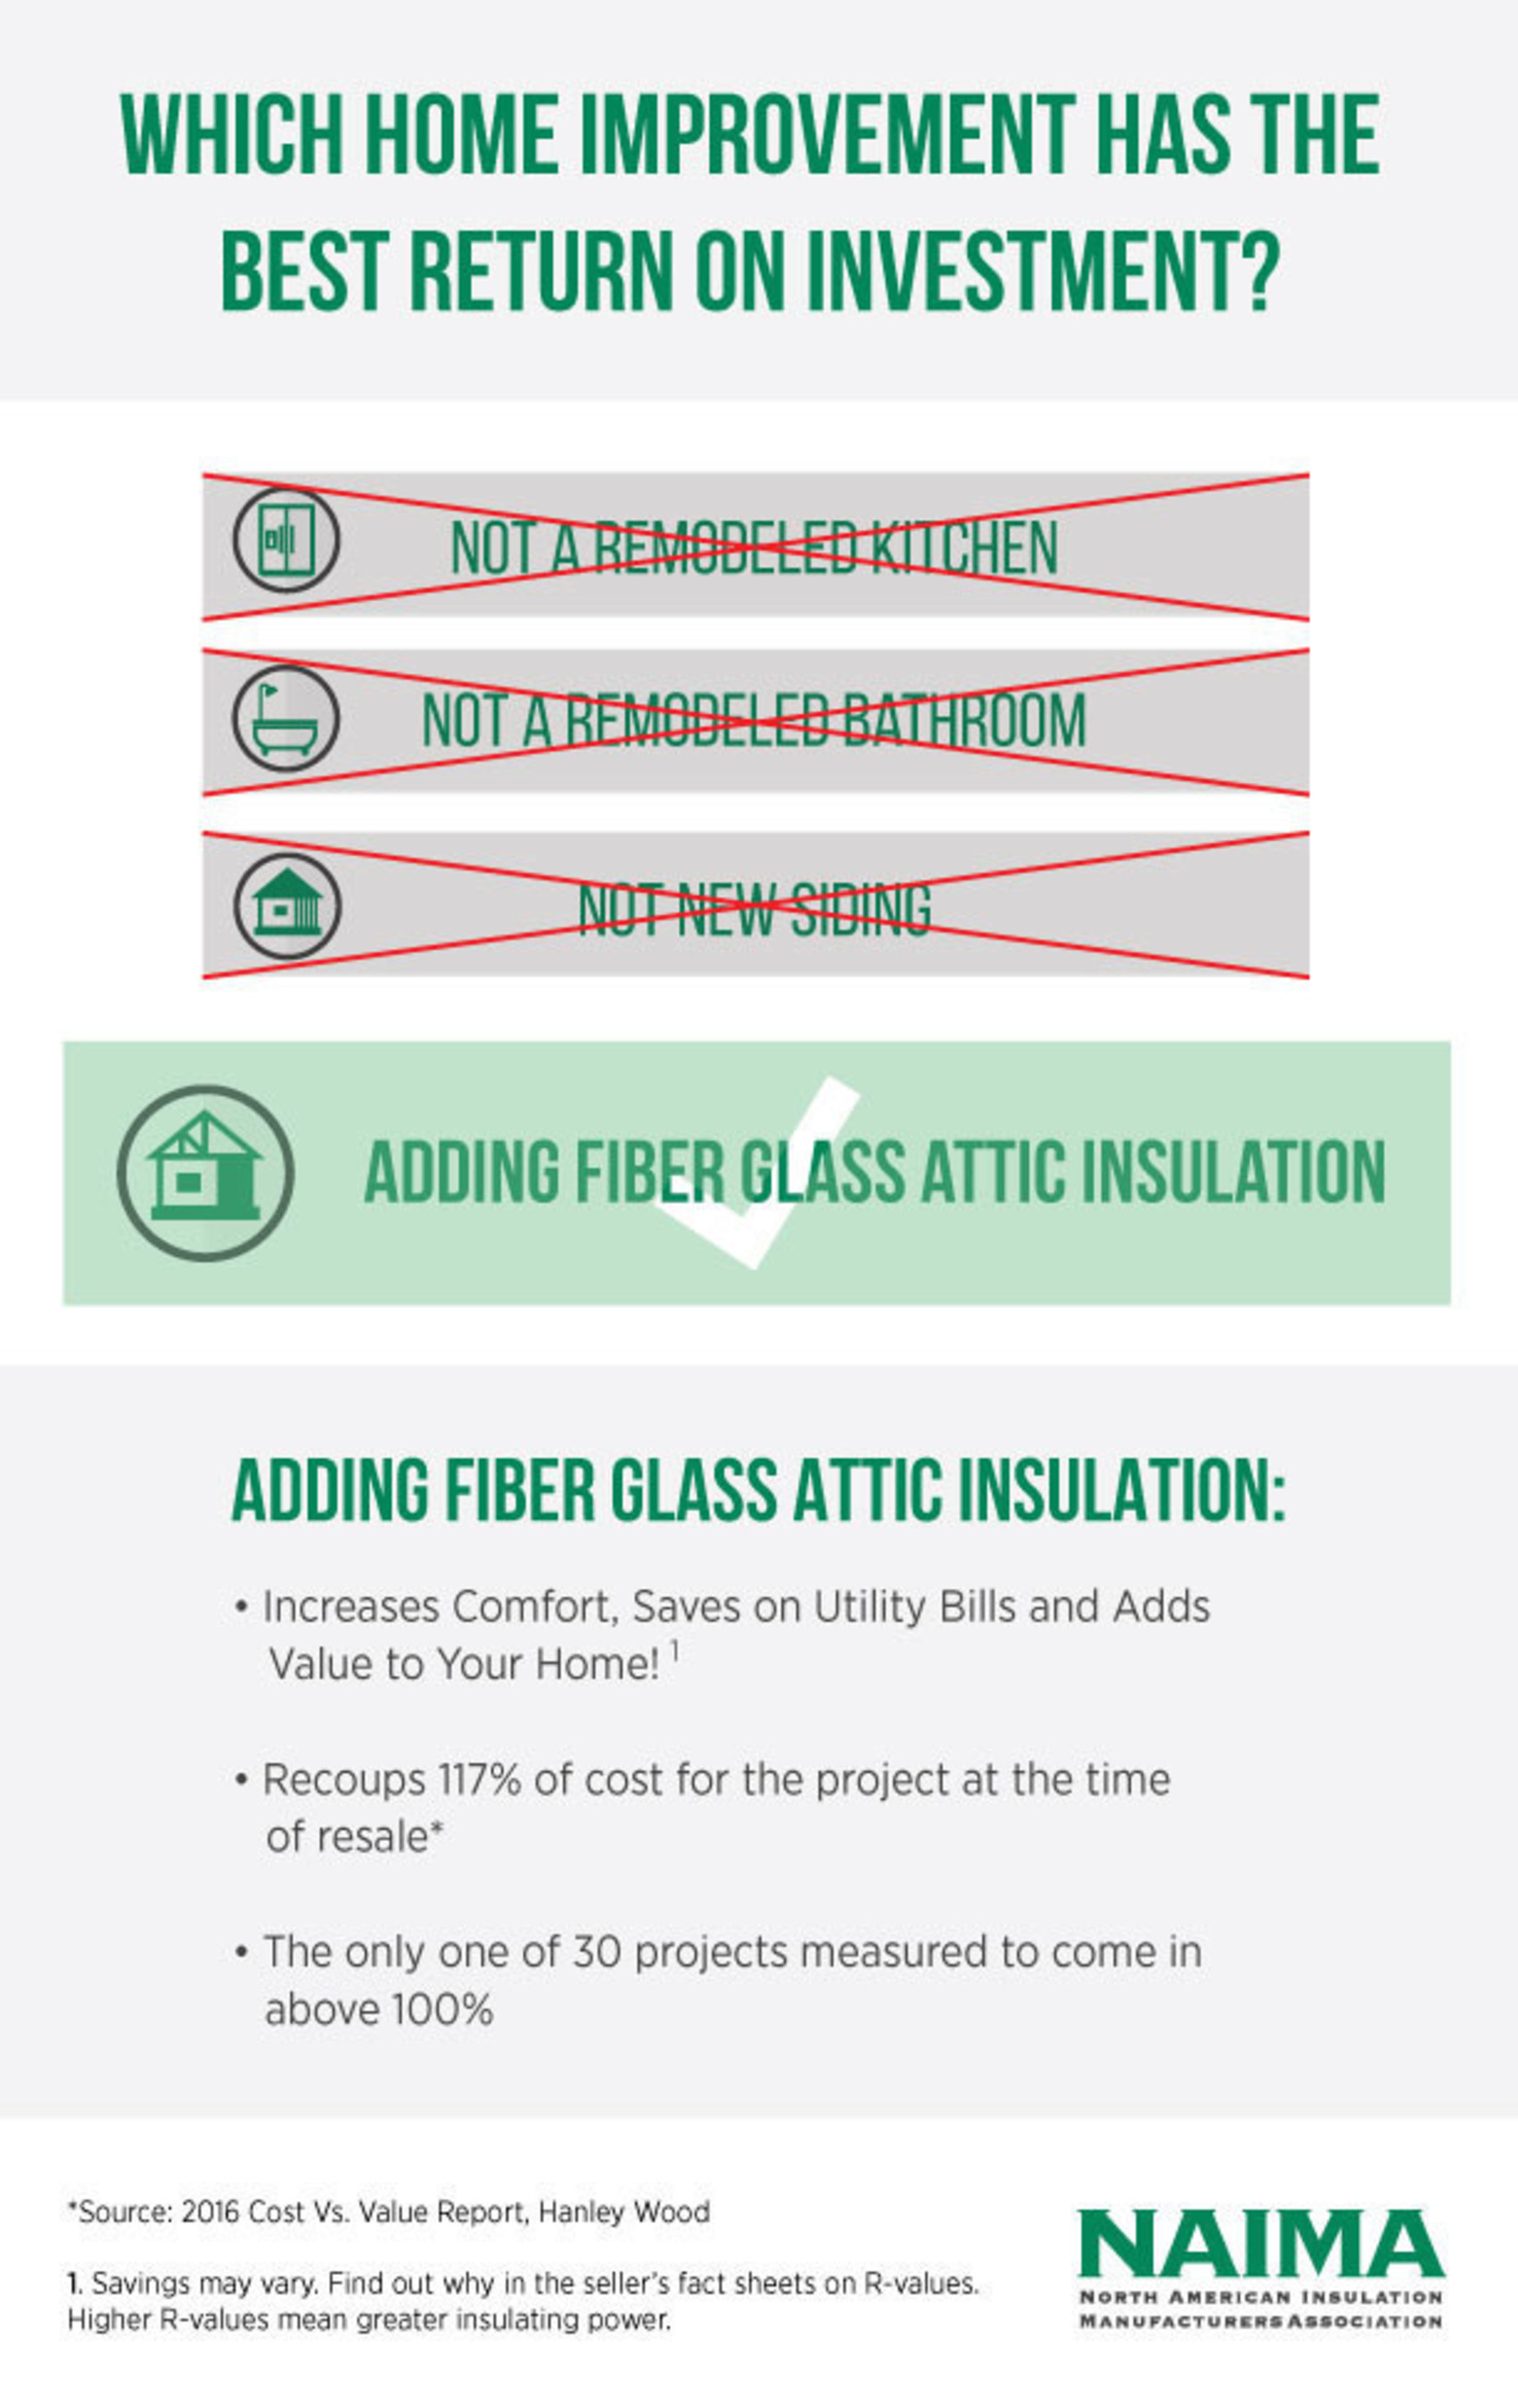 A fiber glass attic insulation upgrade adds value to your home